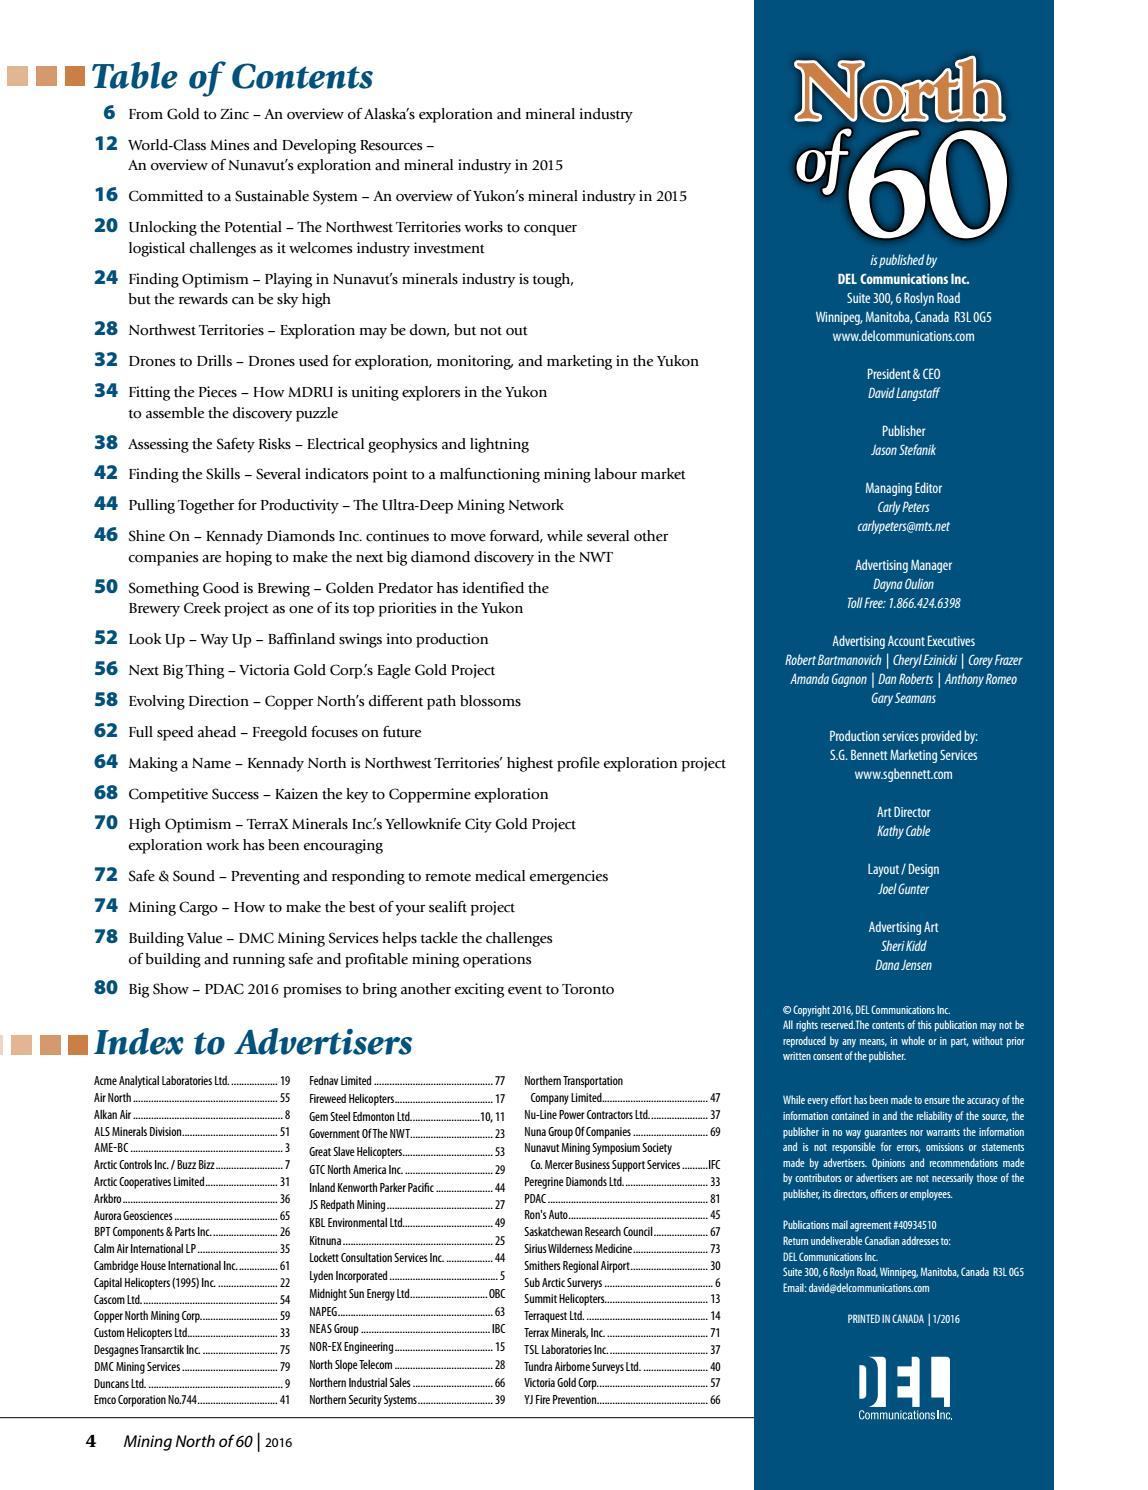 North of 60 Mining and Exploration Review 2016 by DEL Communications